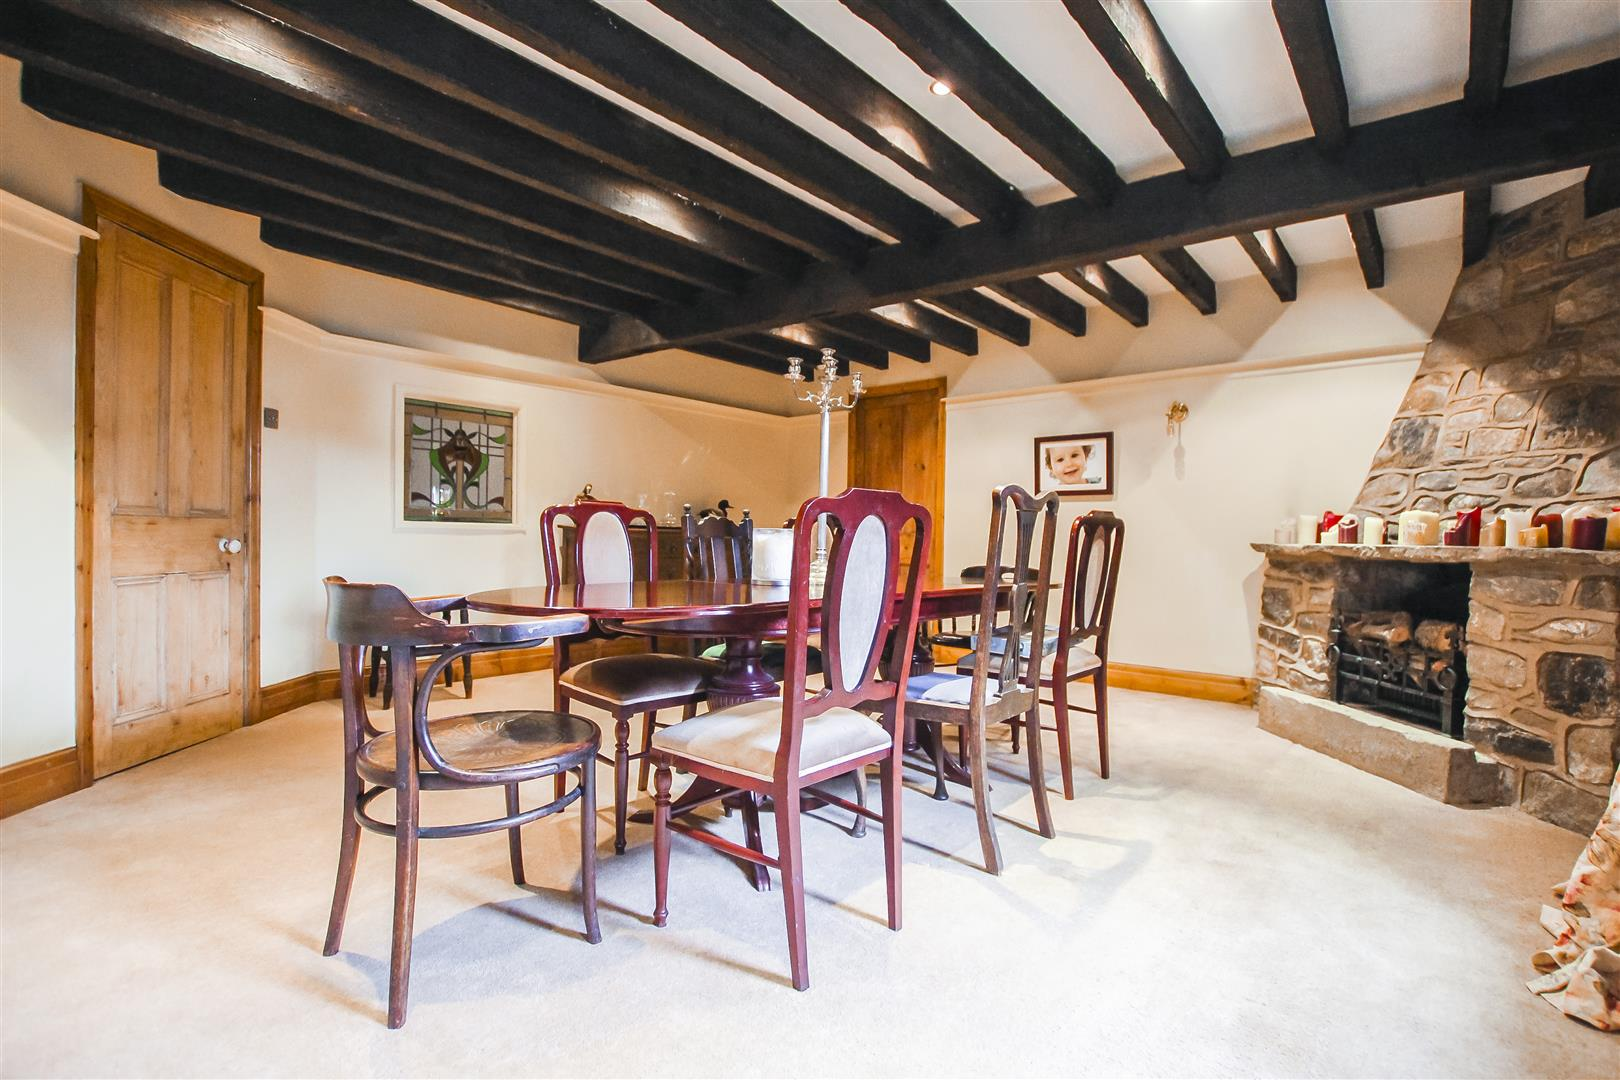 5 Bedroom Barn Conversion For Sale - Image 39